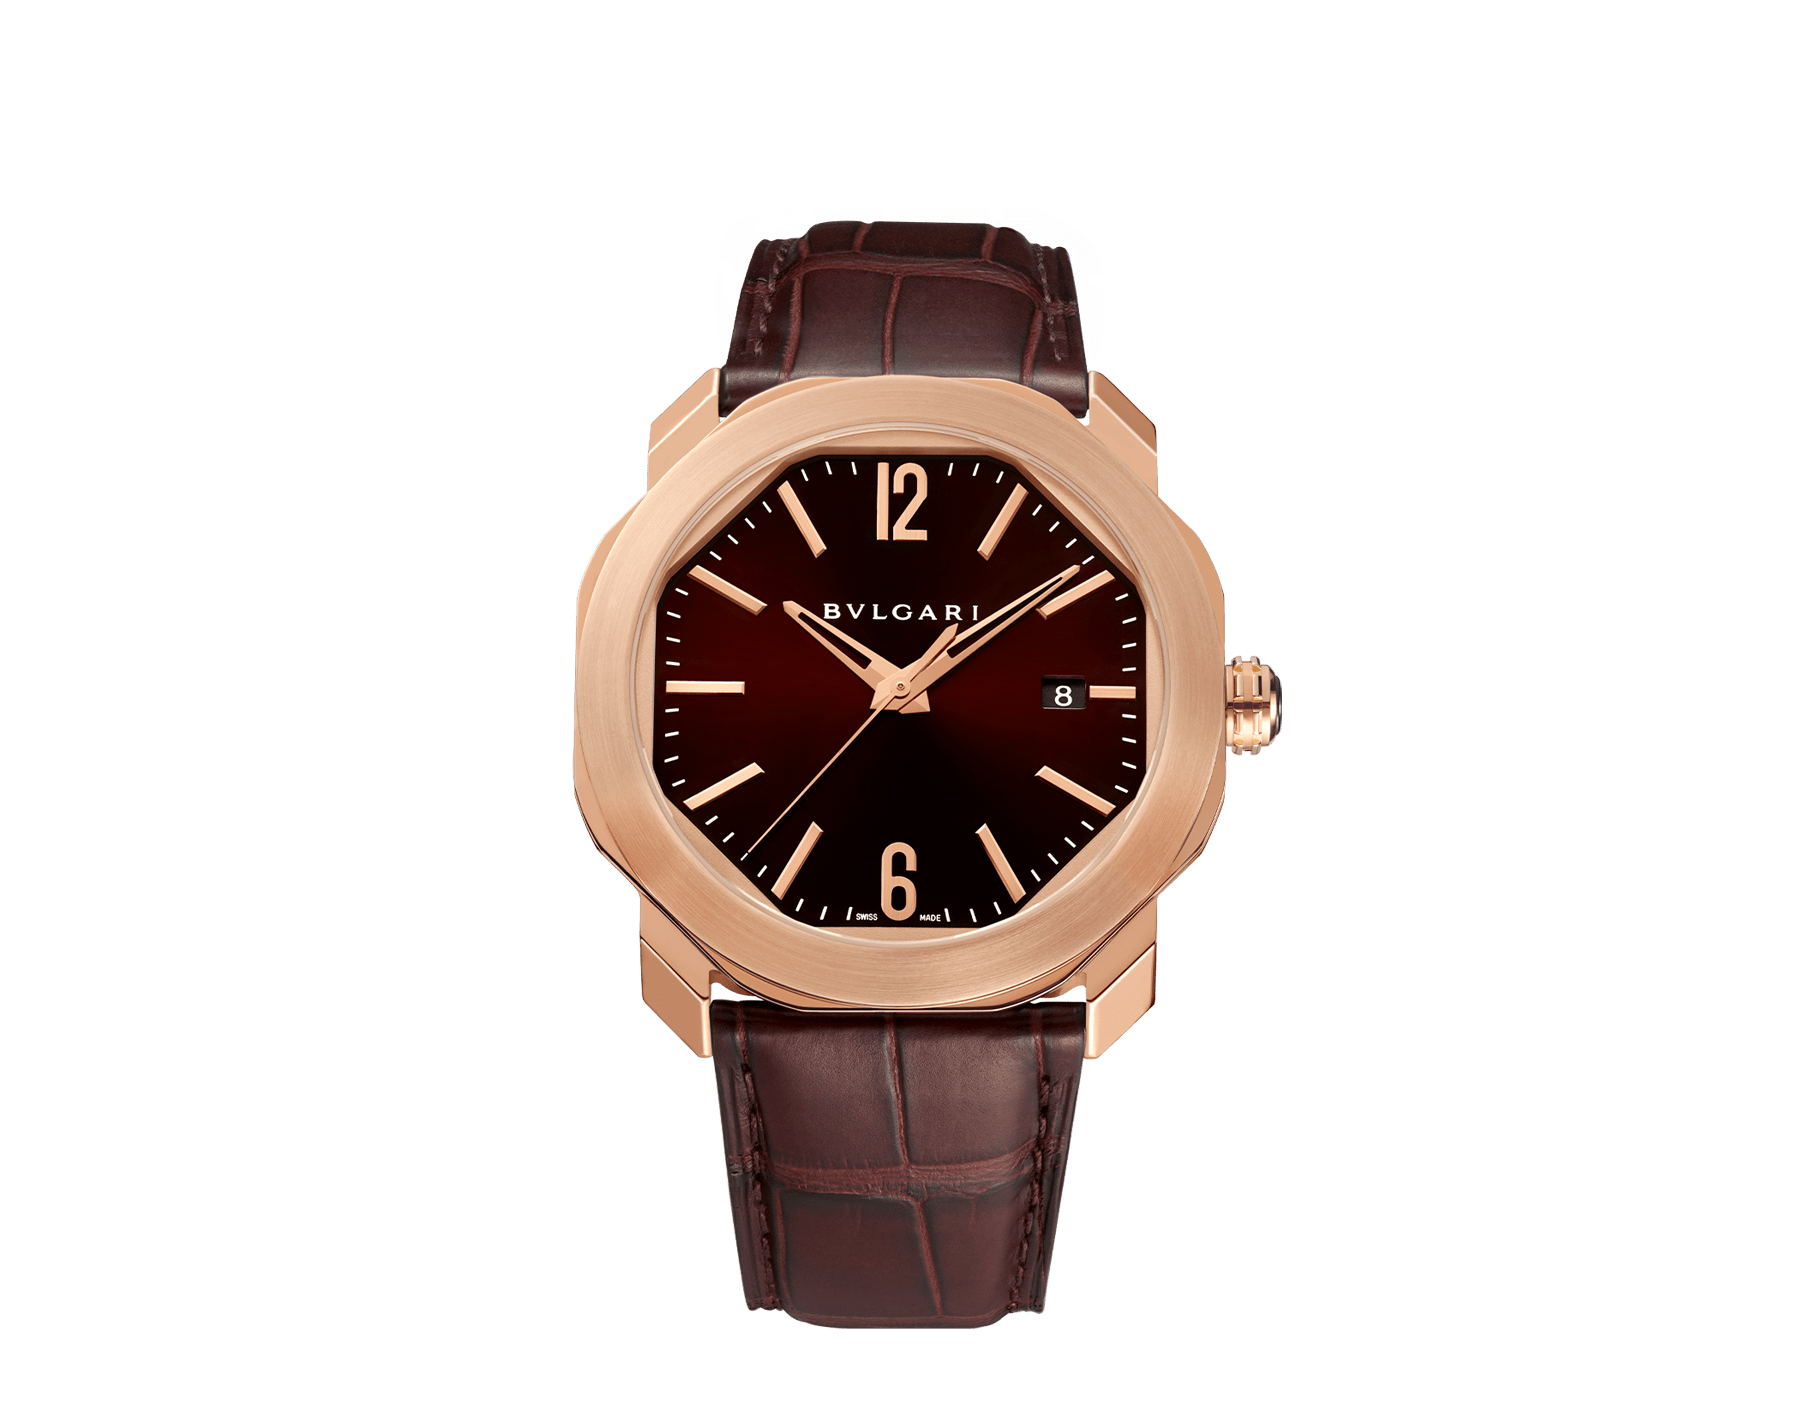 Octo Roma watch with mechanical manufacture movement, automatic winding, 18 kt rose gold case, dark brown lacquered dial and brown alligator bracelet. 102702 image 1